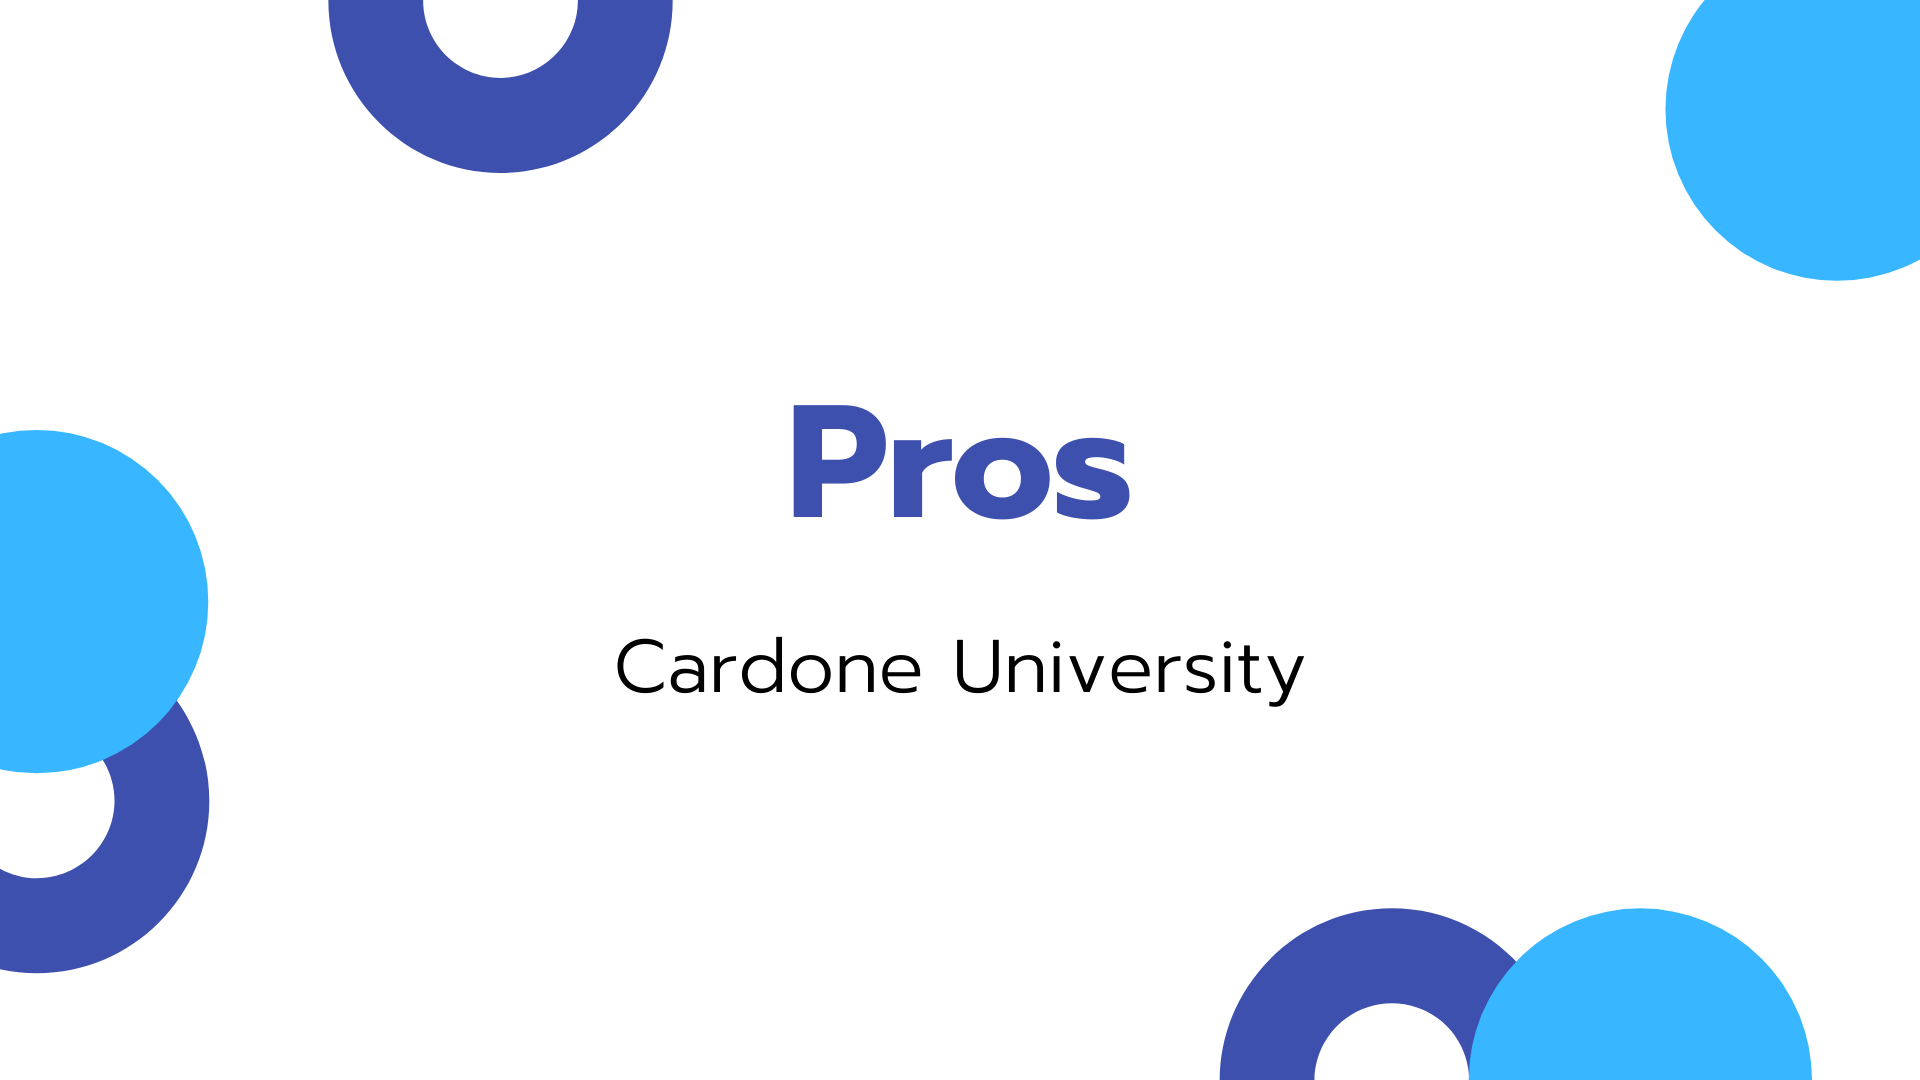 The pros of Cardone University